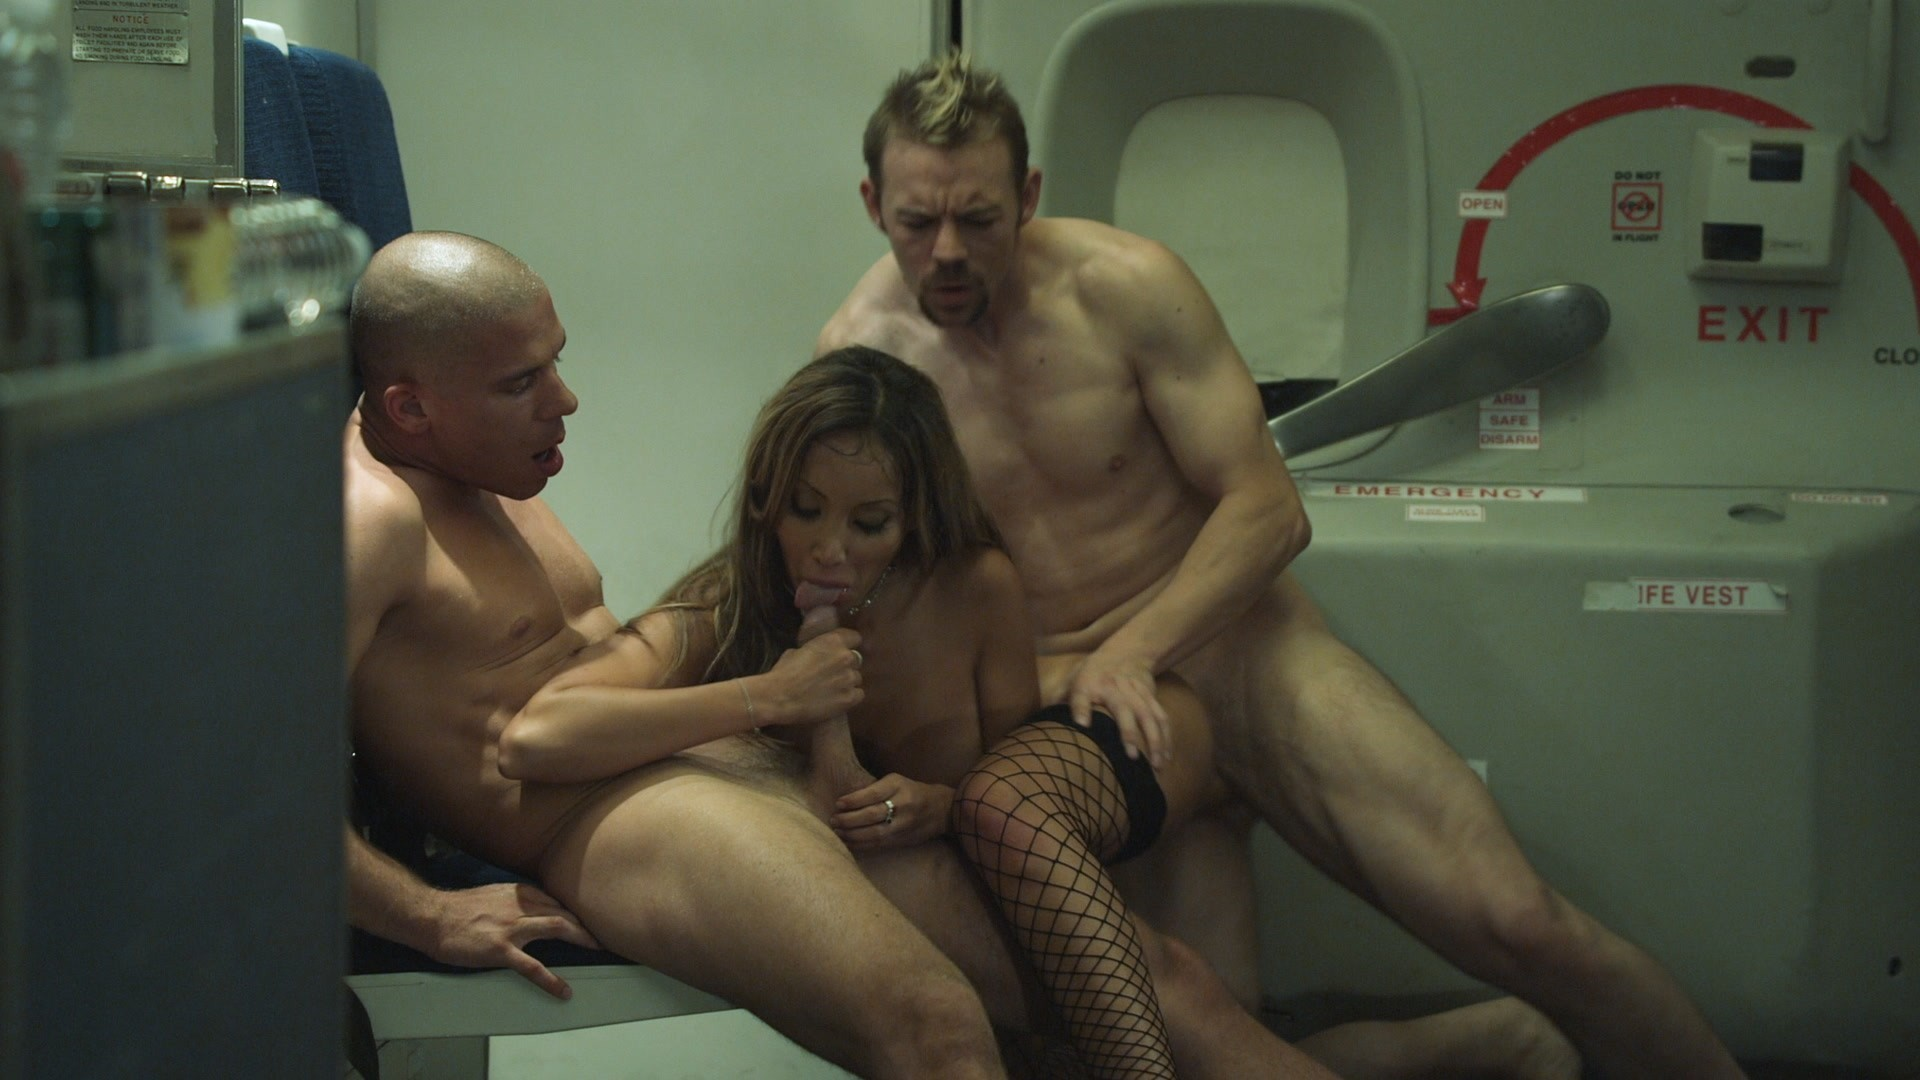 Raven alexis erik everhard bad girls 8 scene 4 8